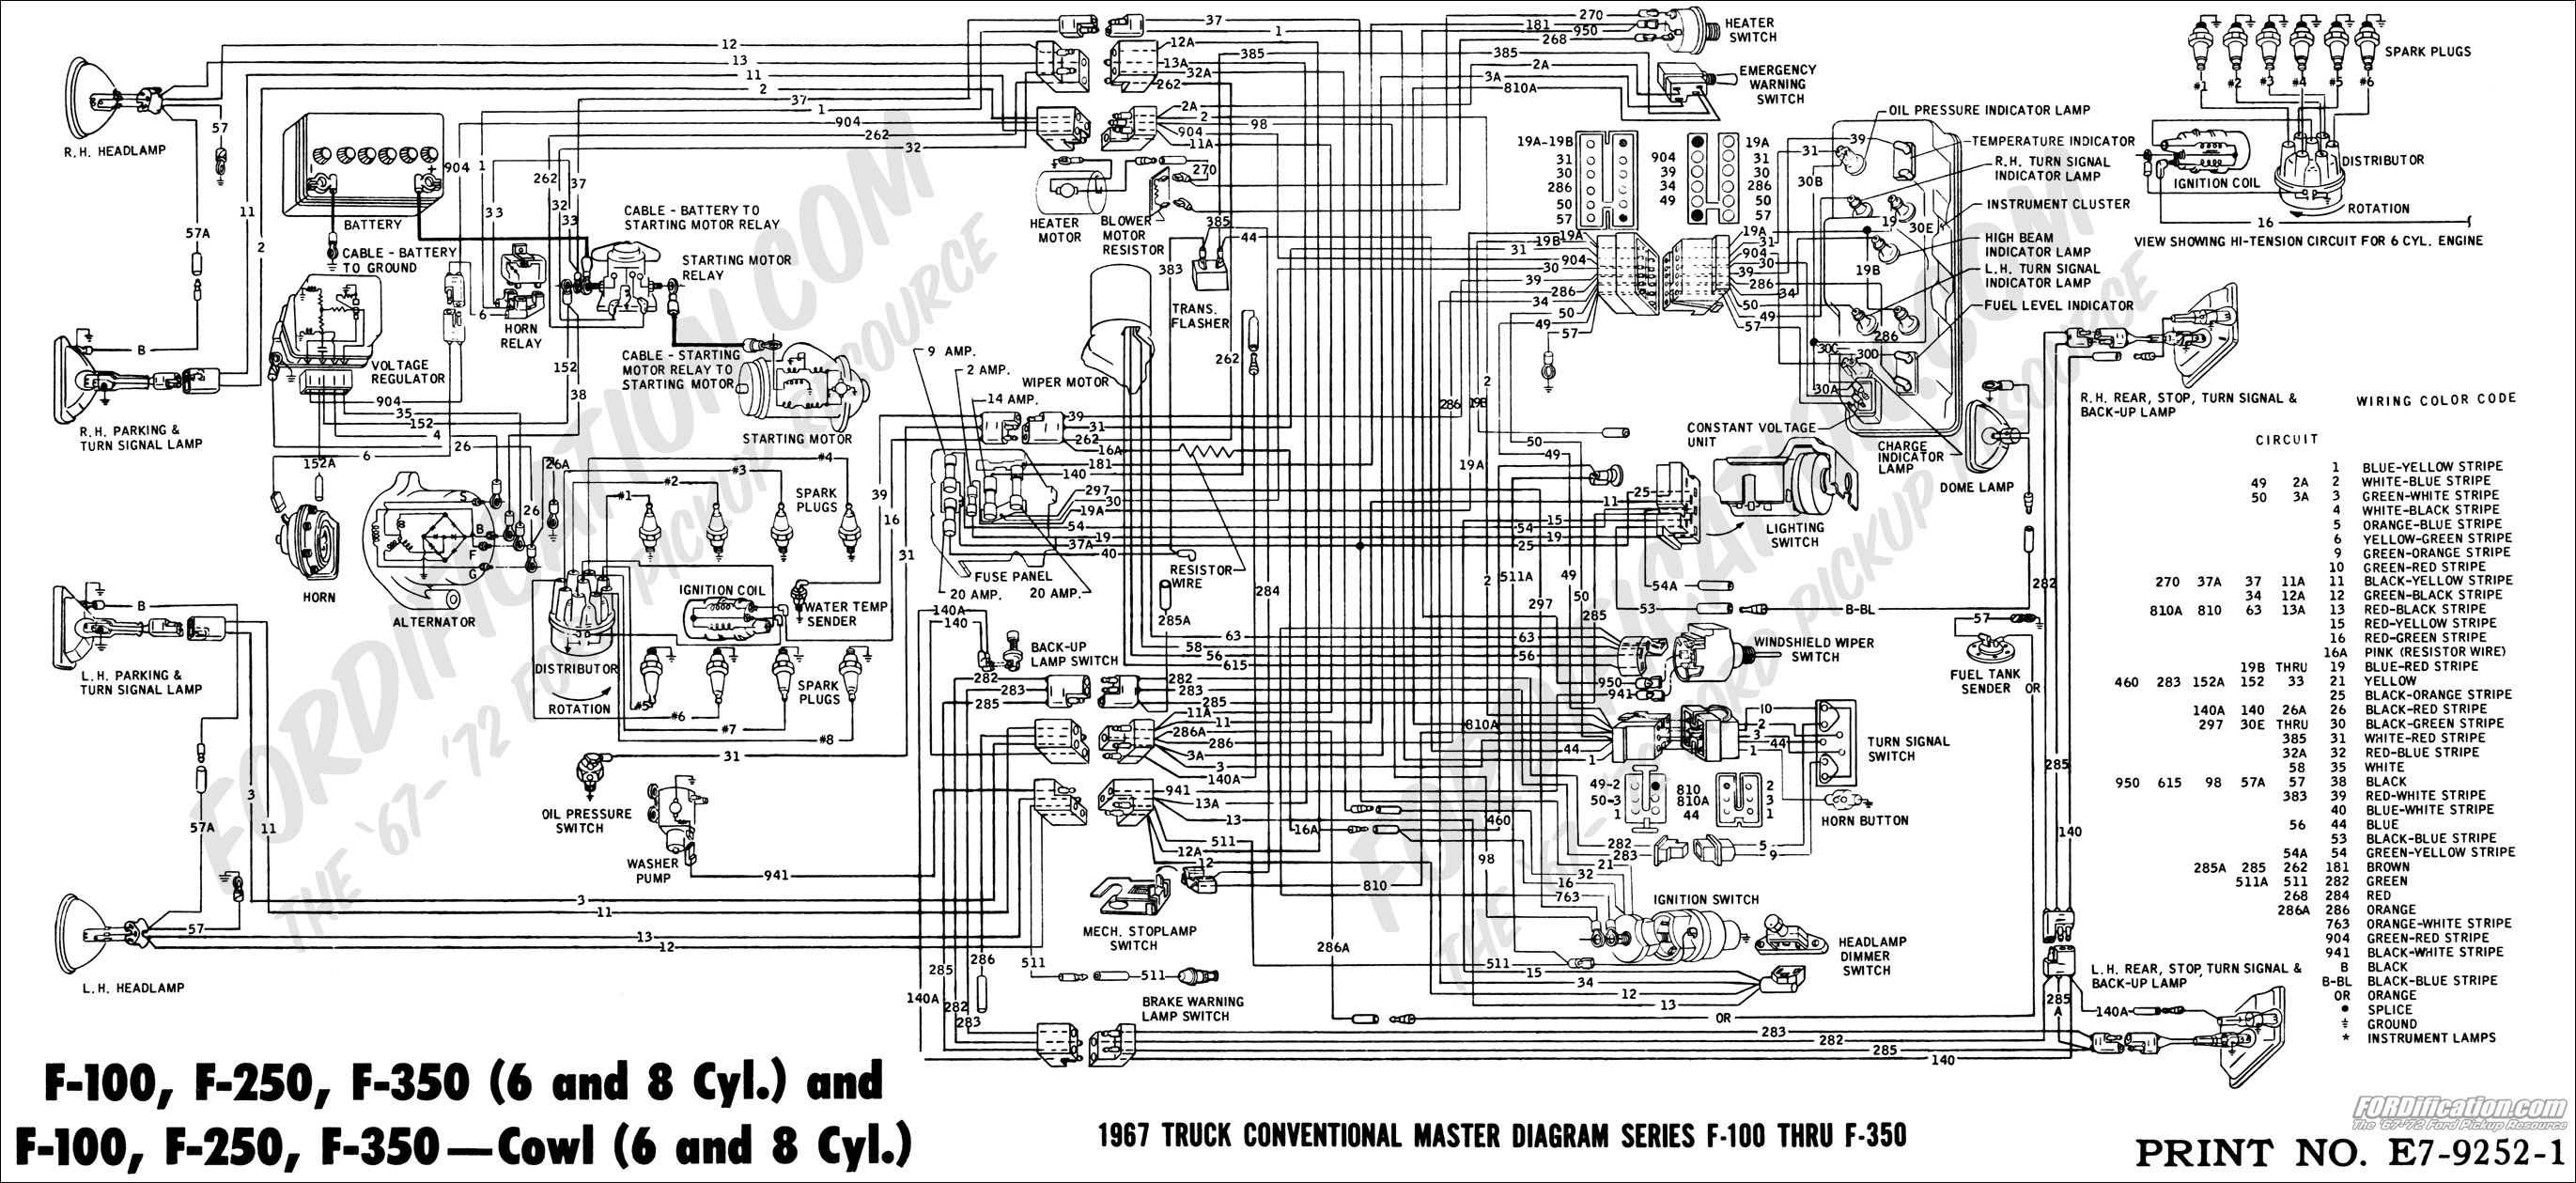 Cat 302 5 Wiring Schematic Library 1996 Ford F 250 Fuel Pump Diagram F150 Harness Schematics System